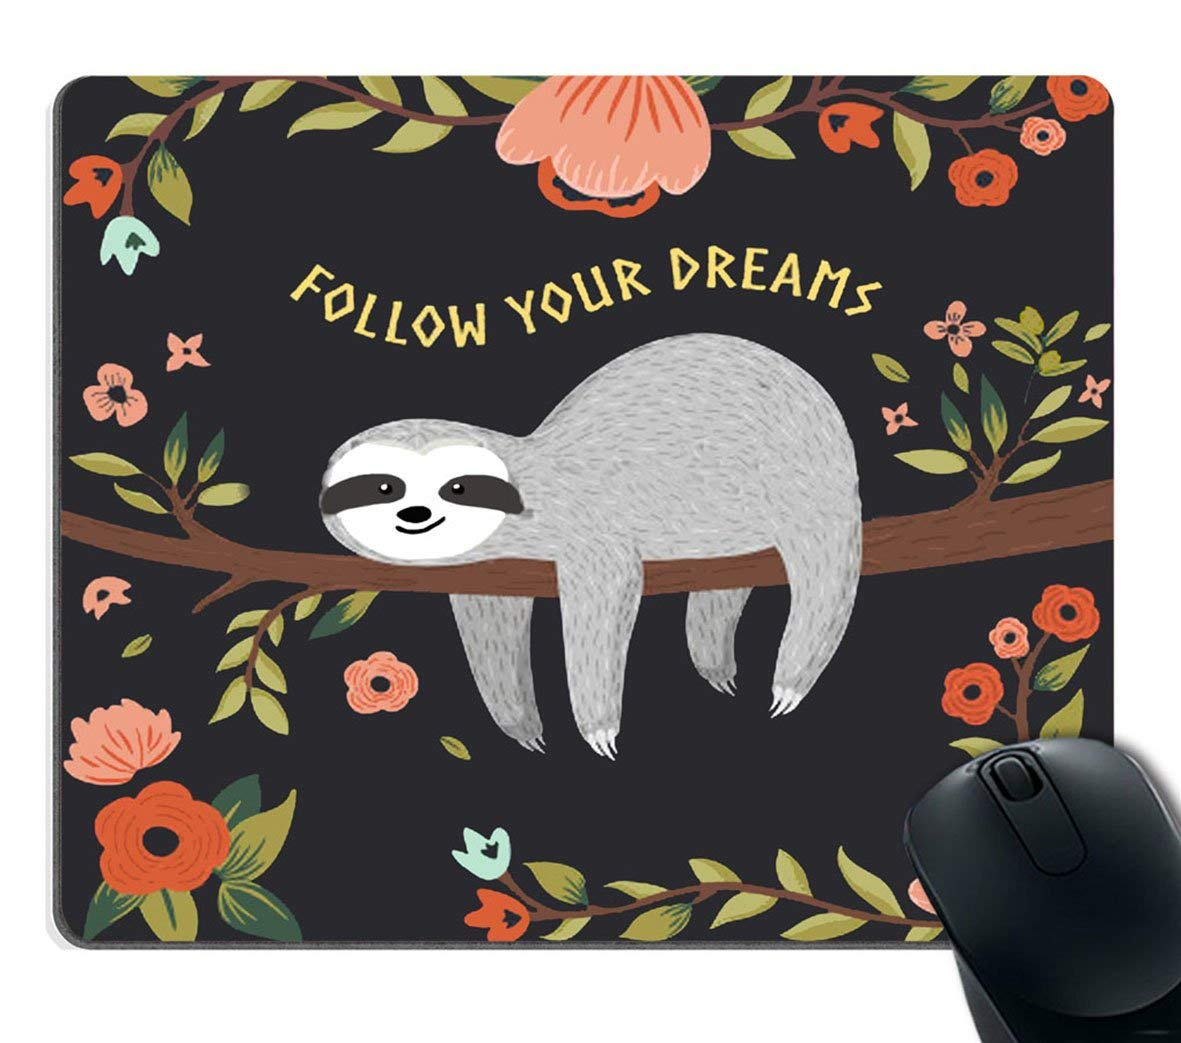 501ff9298cc Get Quotations · Smooffly Gaming Mouse Pad Custom,Follow Your Dreams Mouse  pad Cute Baby Sloth on The